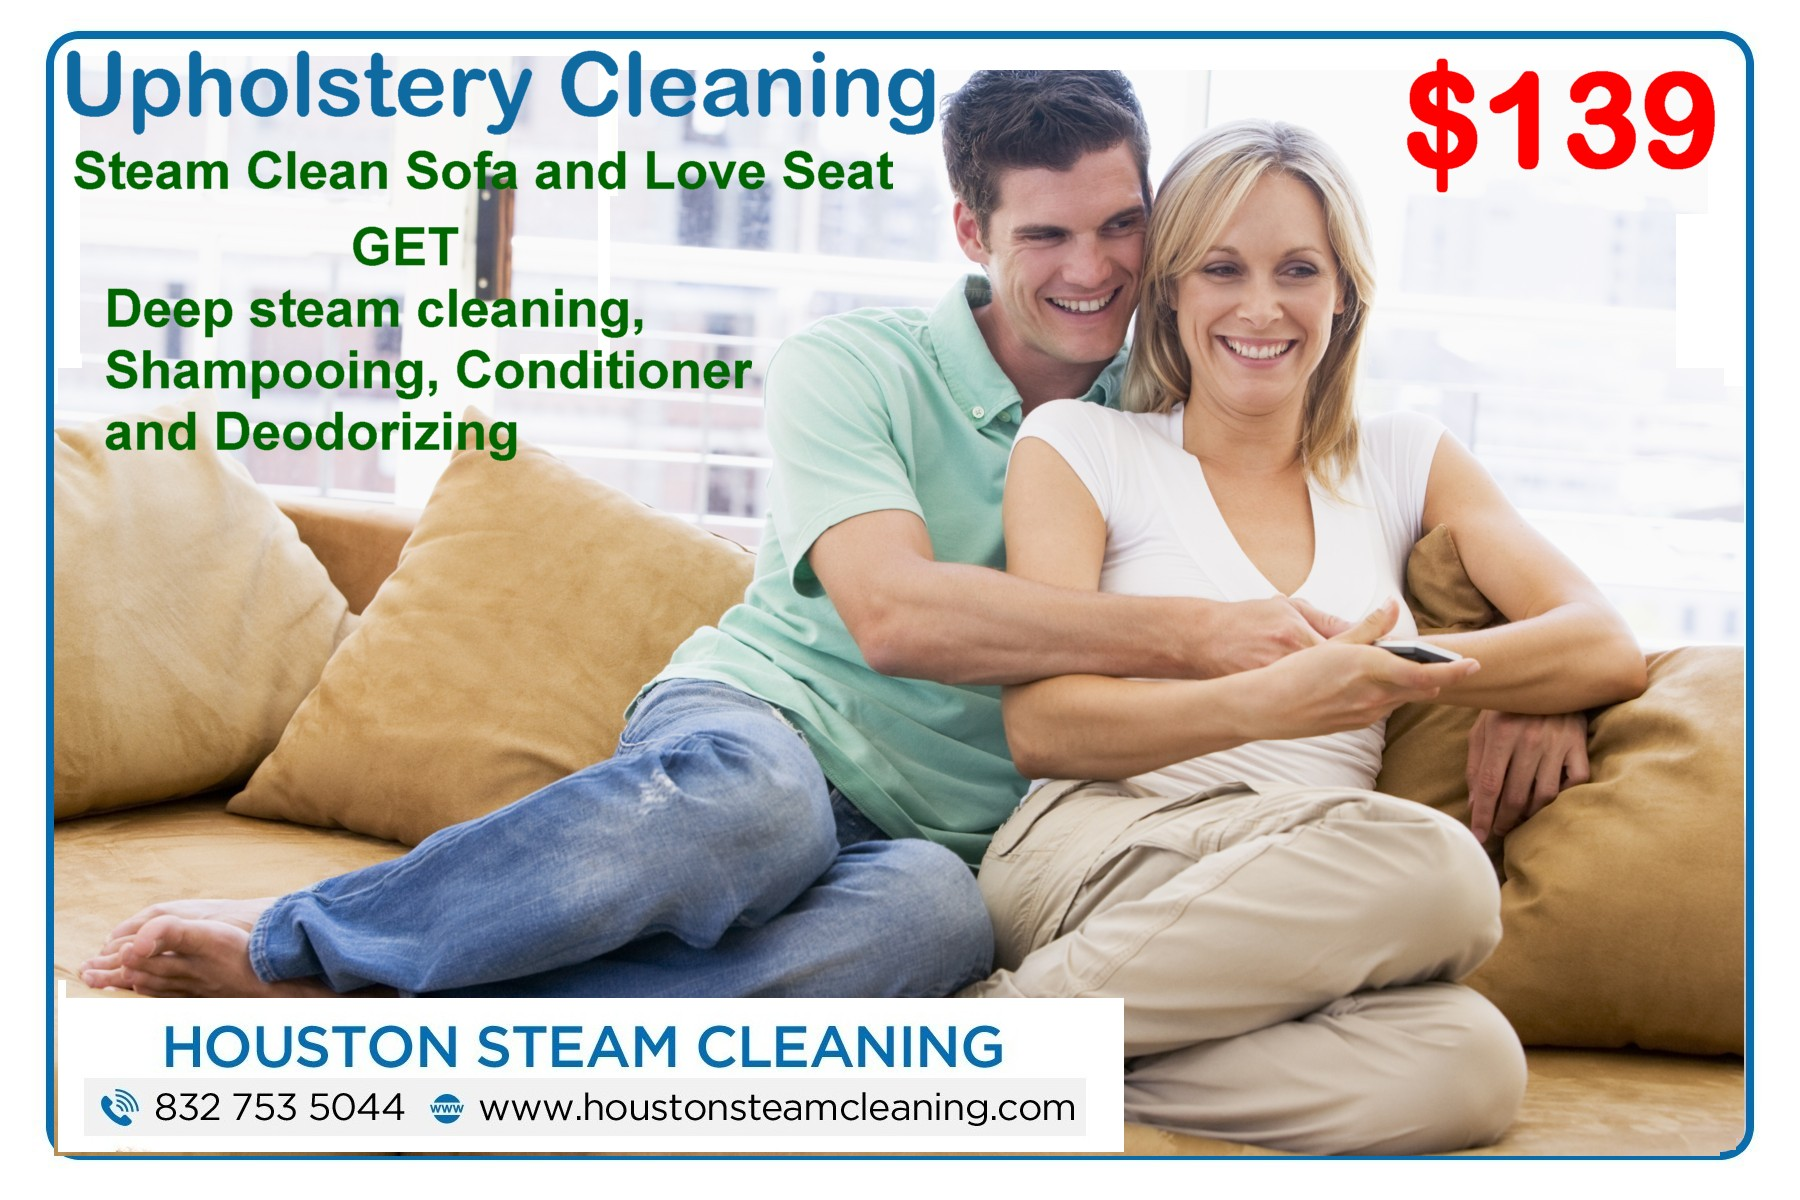 Only $139 for sofa and love seat upholstery cleaning